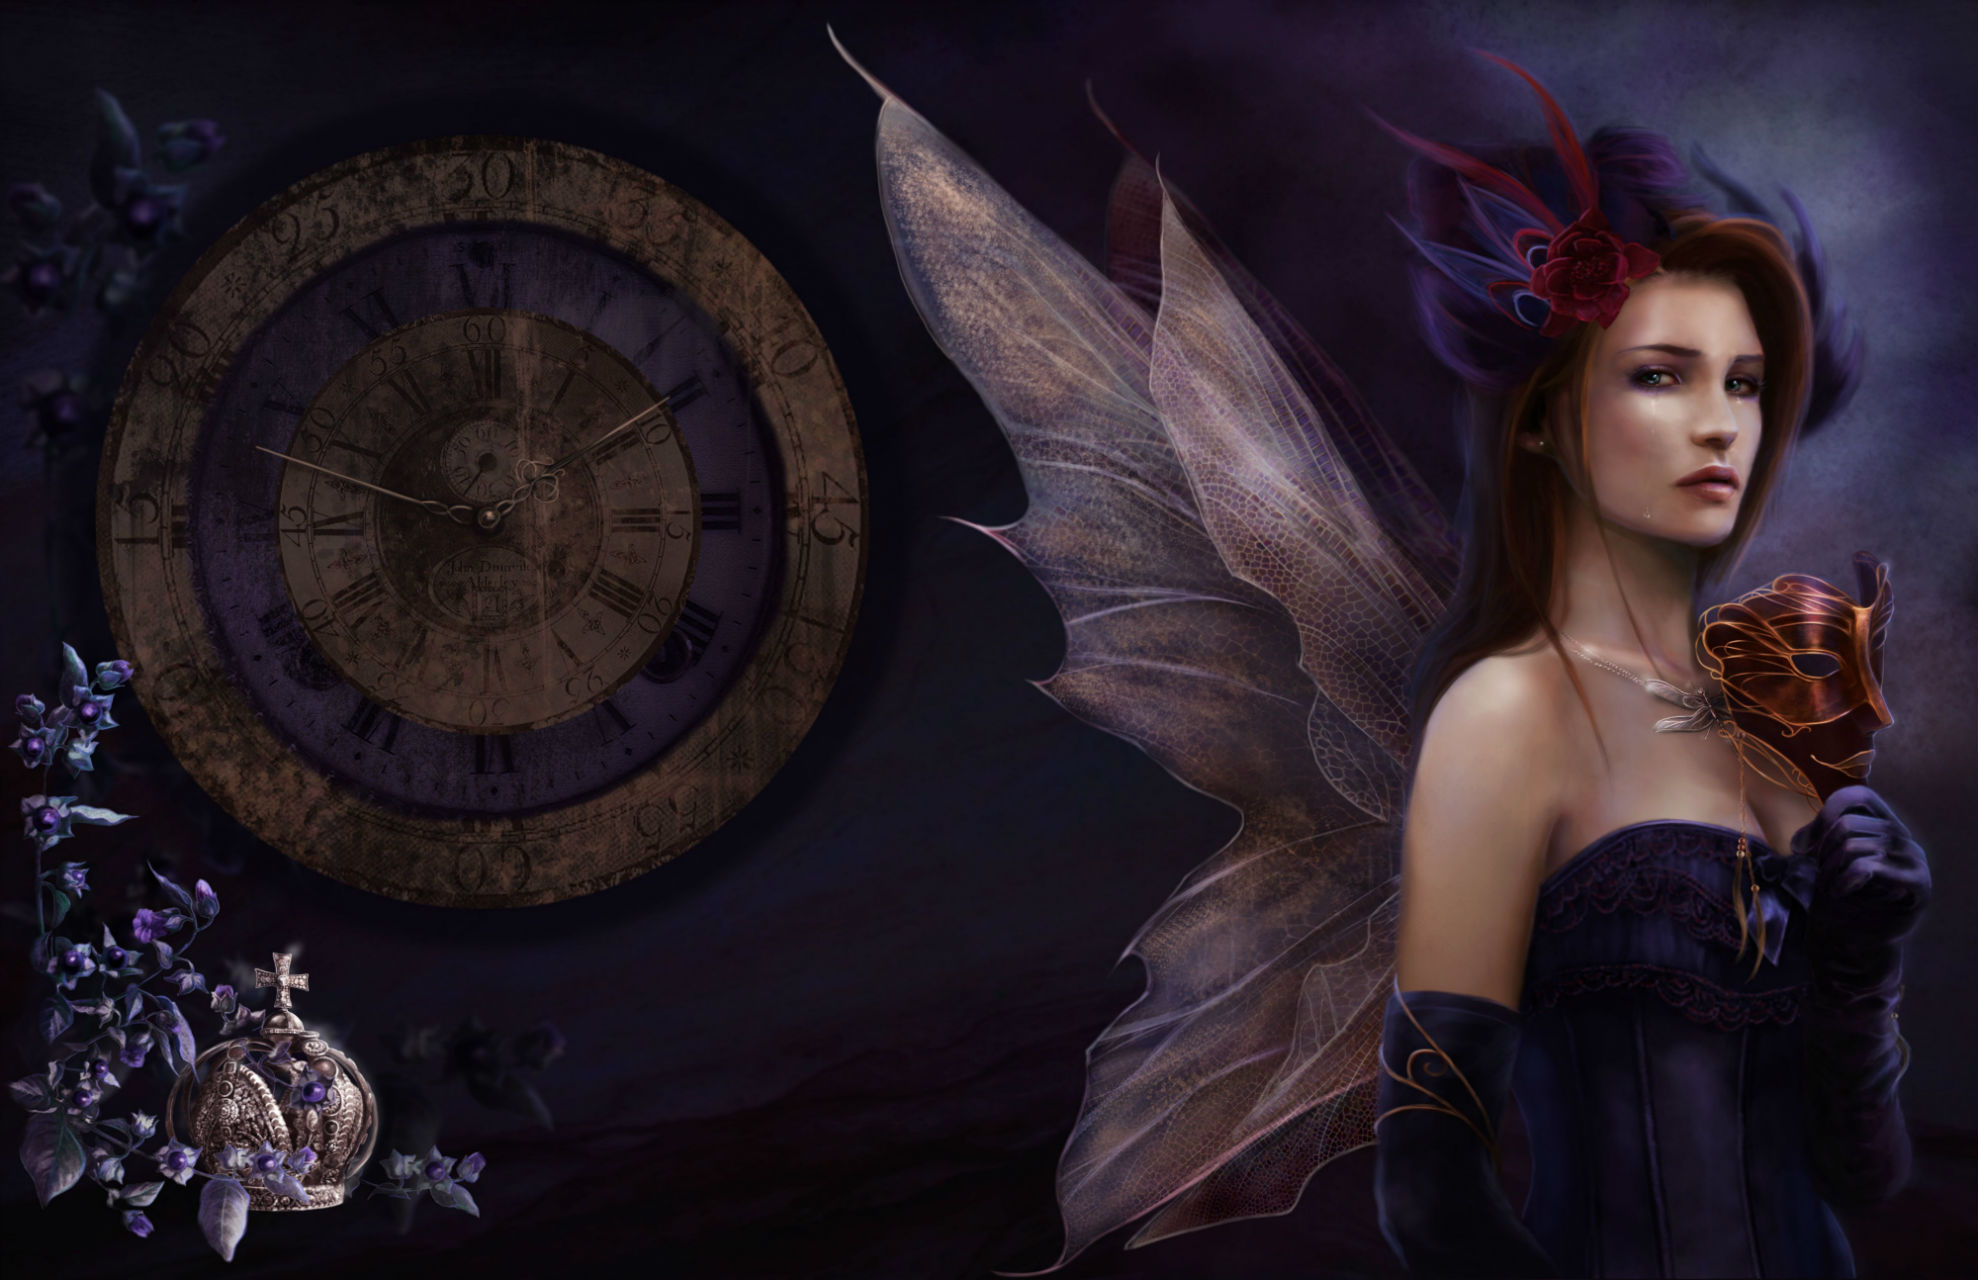 sexy gothic fairy wallpaper - photo #22